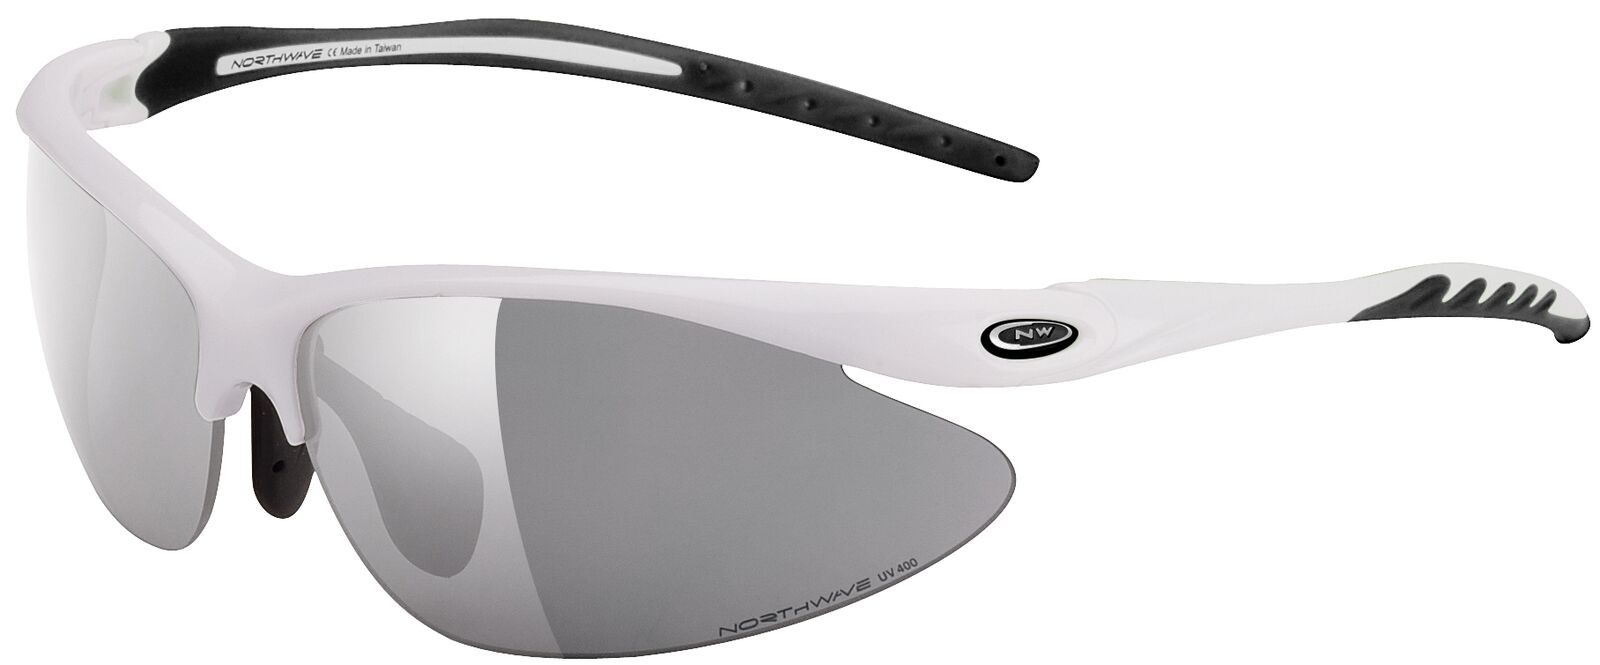 Wiggle | Northwave Team Photochromic Sunglasses | Performance ...